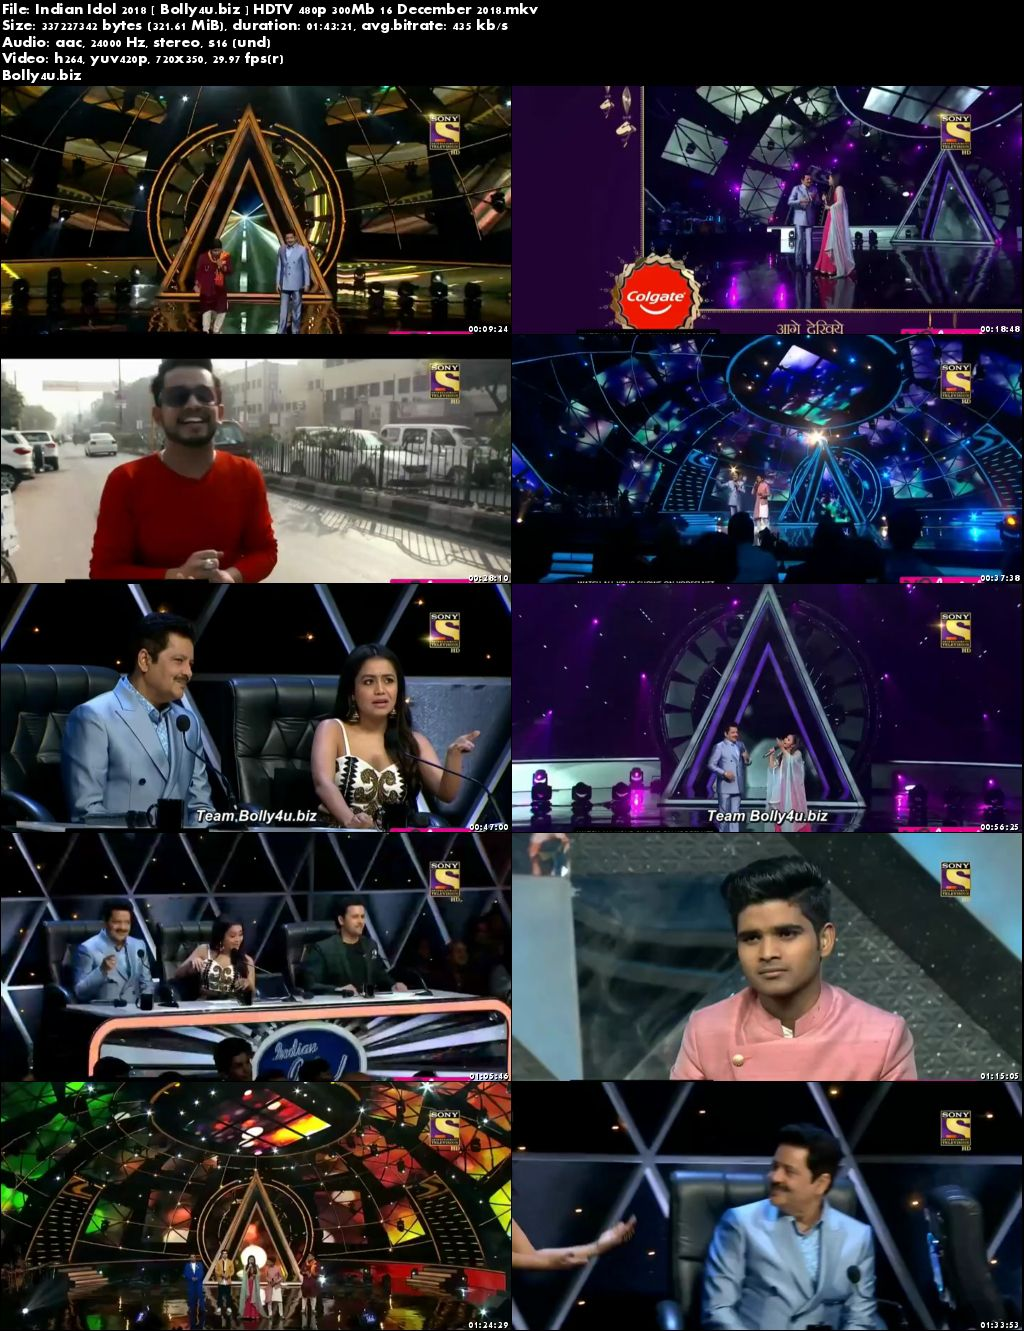 Indian Idol 2018 HDTV 480p 300Mb 16 December 2018 Download